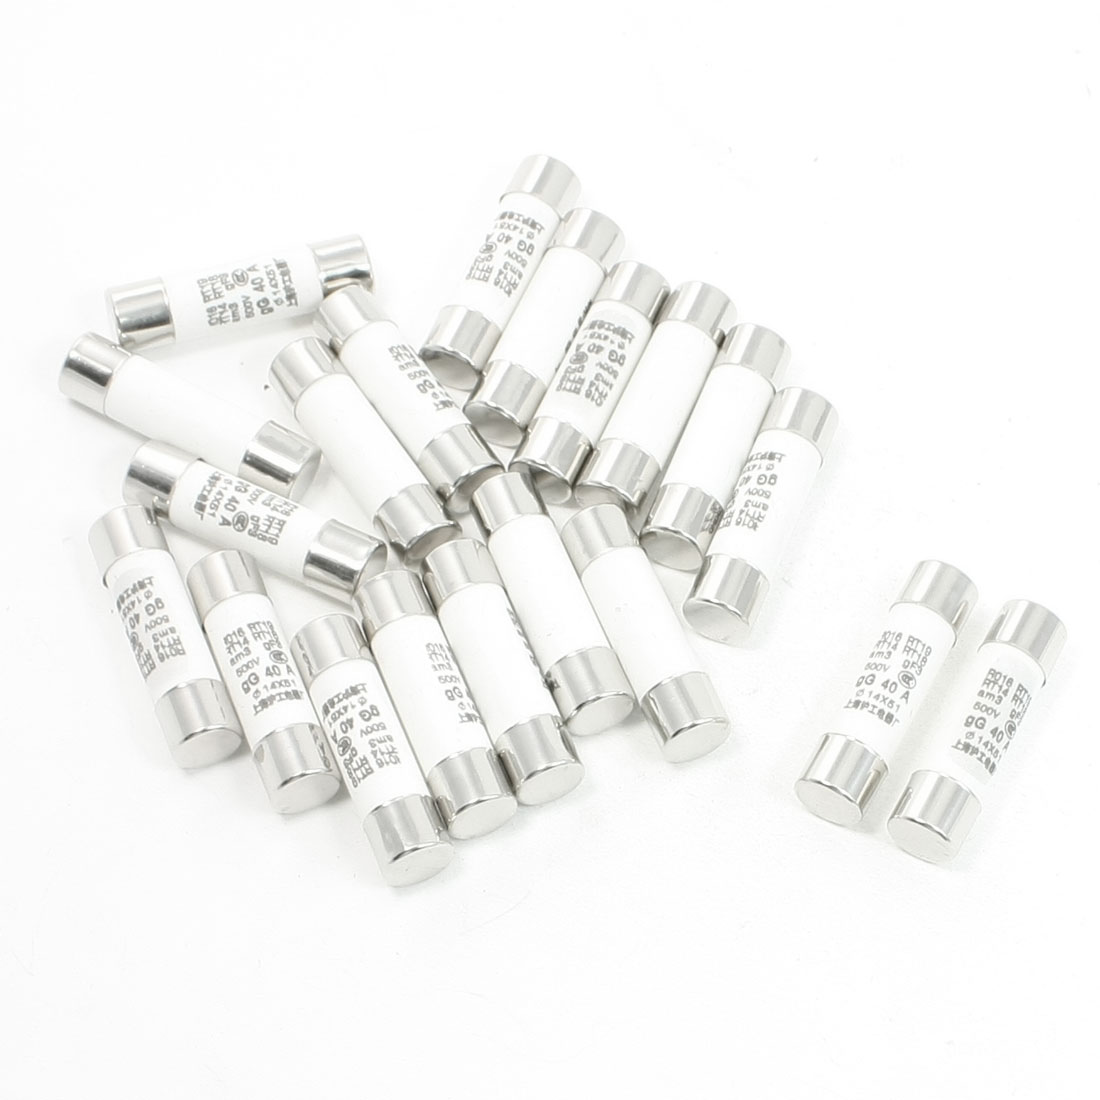 20 Pcs 500V 40A 14x51mm Cylindrical Ceramic Tube Fuses Link R016 RT14 RT18 RT19